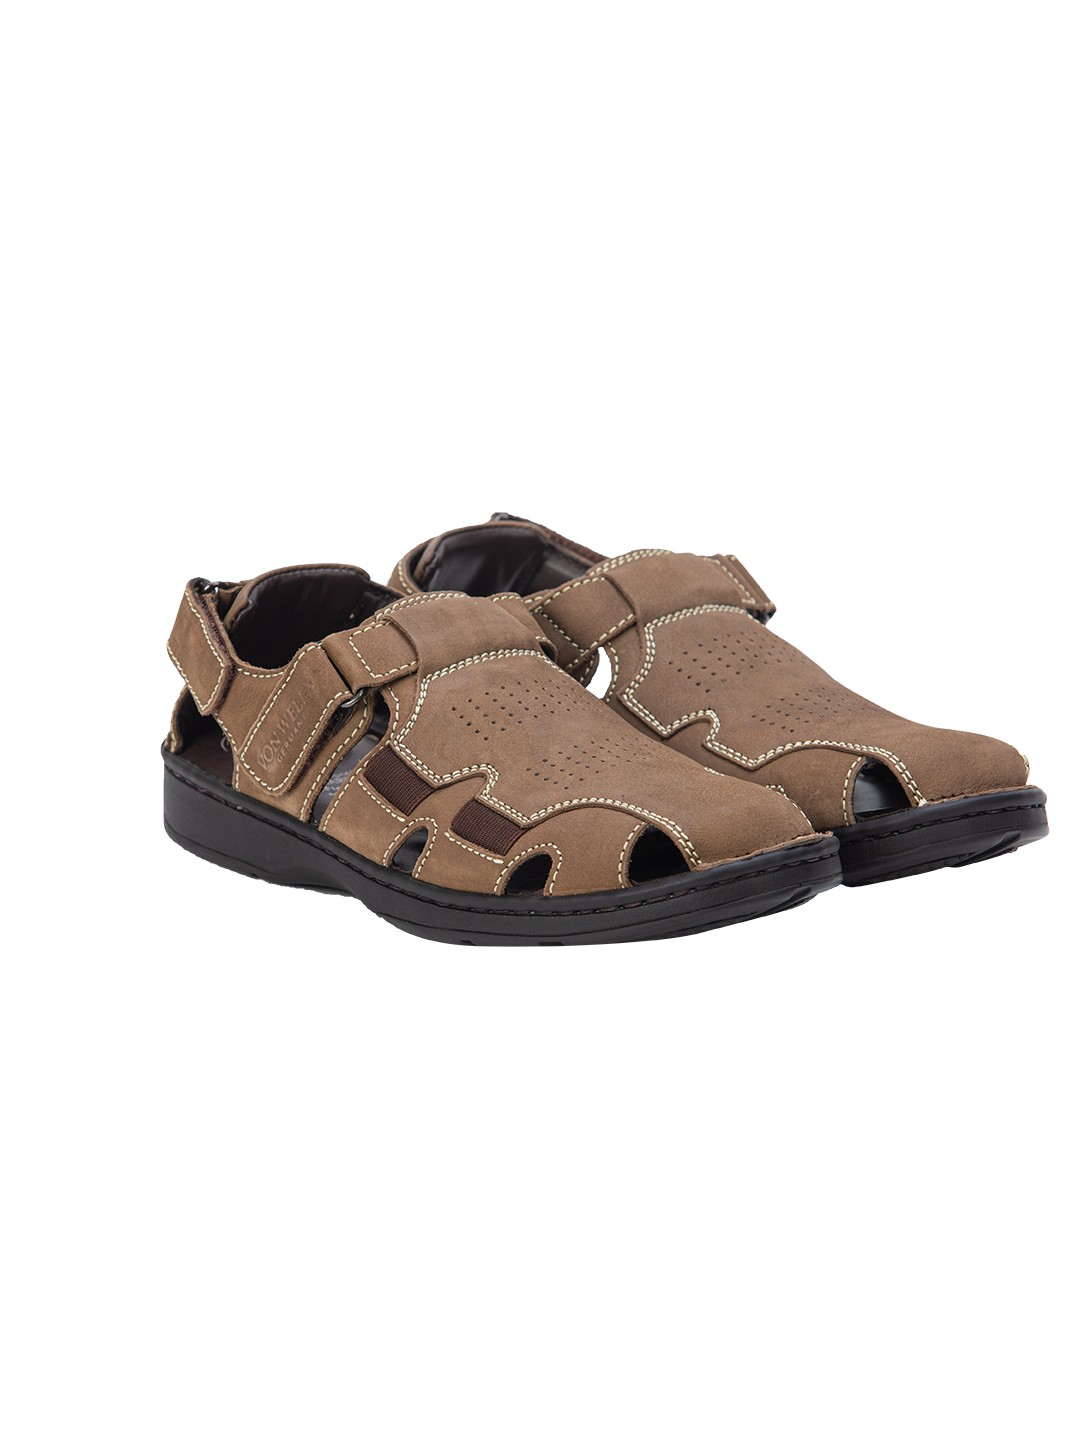 Buy Von Wellx Germany Comfort Neil Chikoo Sandals Online in Muscat